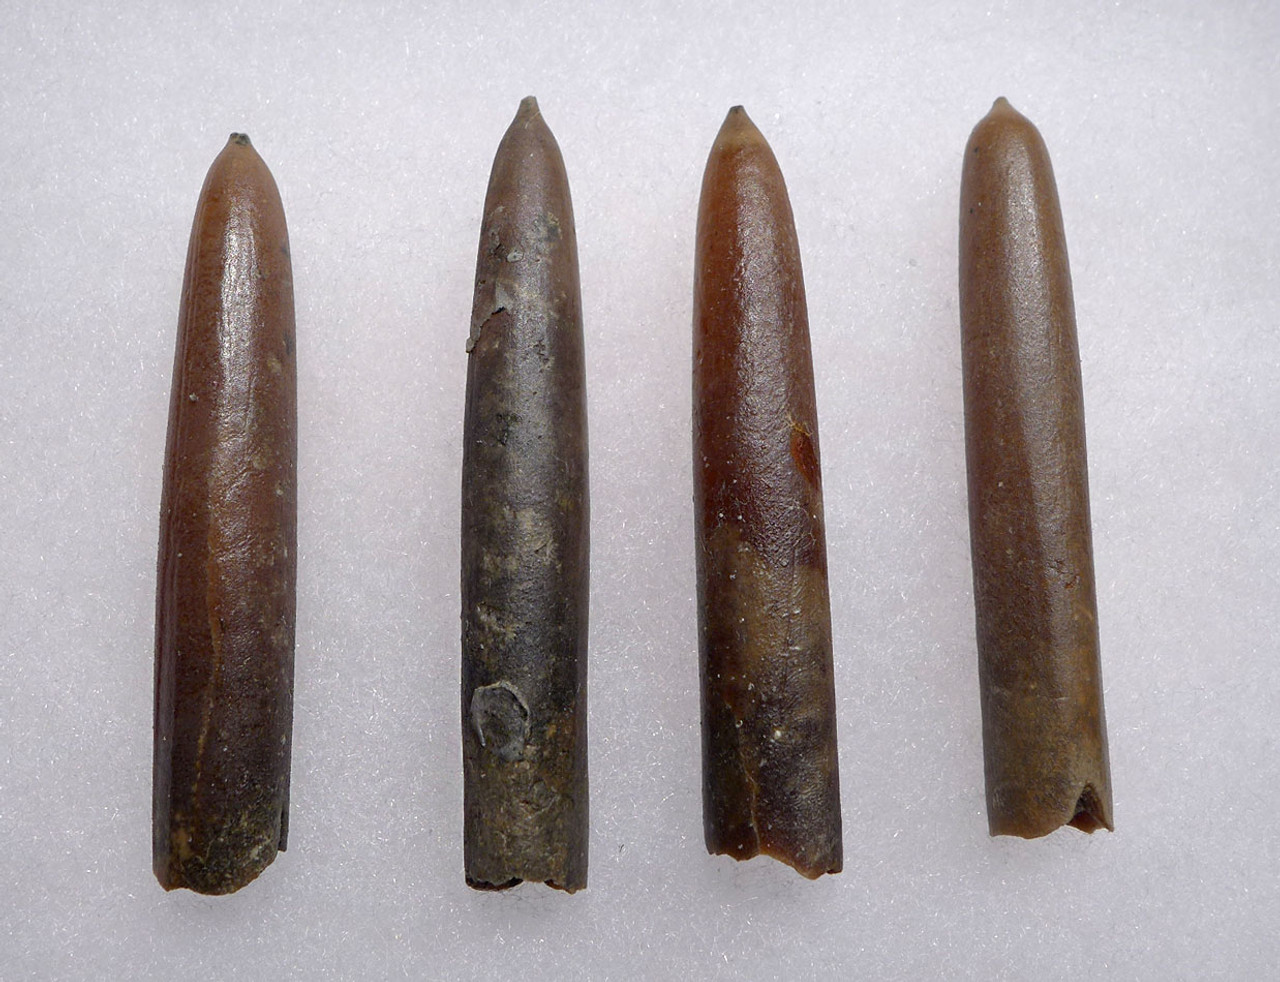 FOUR NATURAL GONIOTEUTHIS SOLID CALCITE BELEMNITES FROM THE CRETACEOUS PERIOD *BEL103